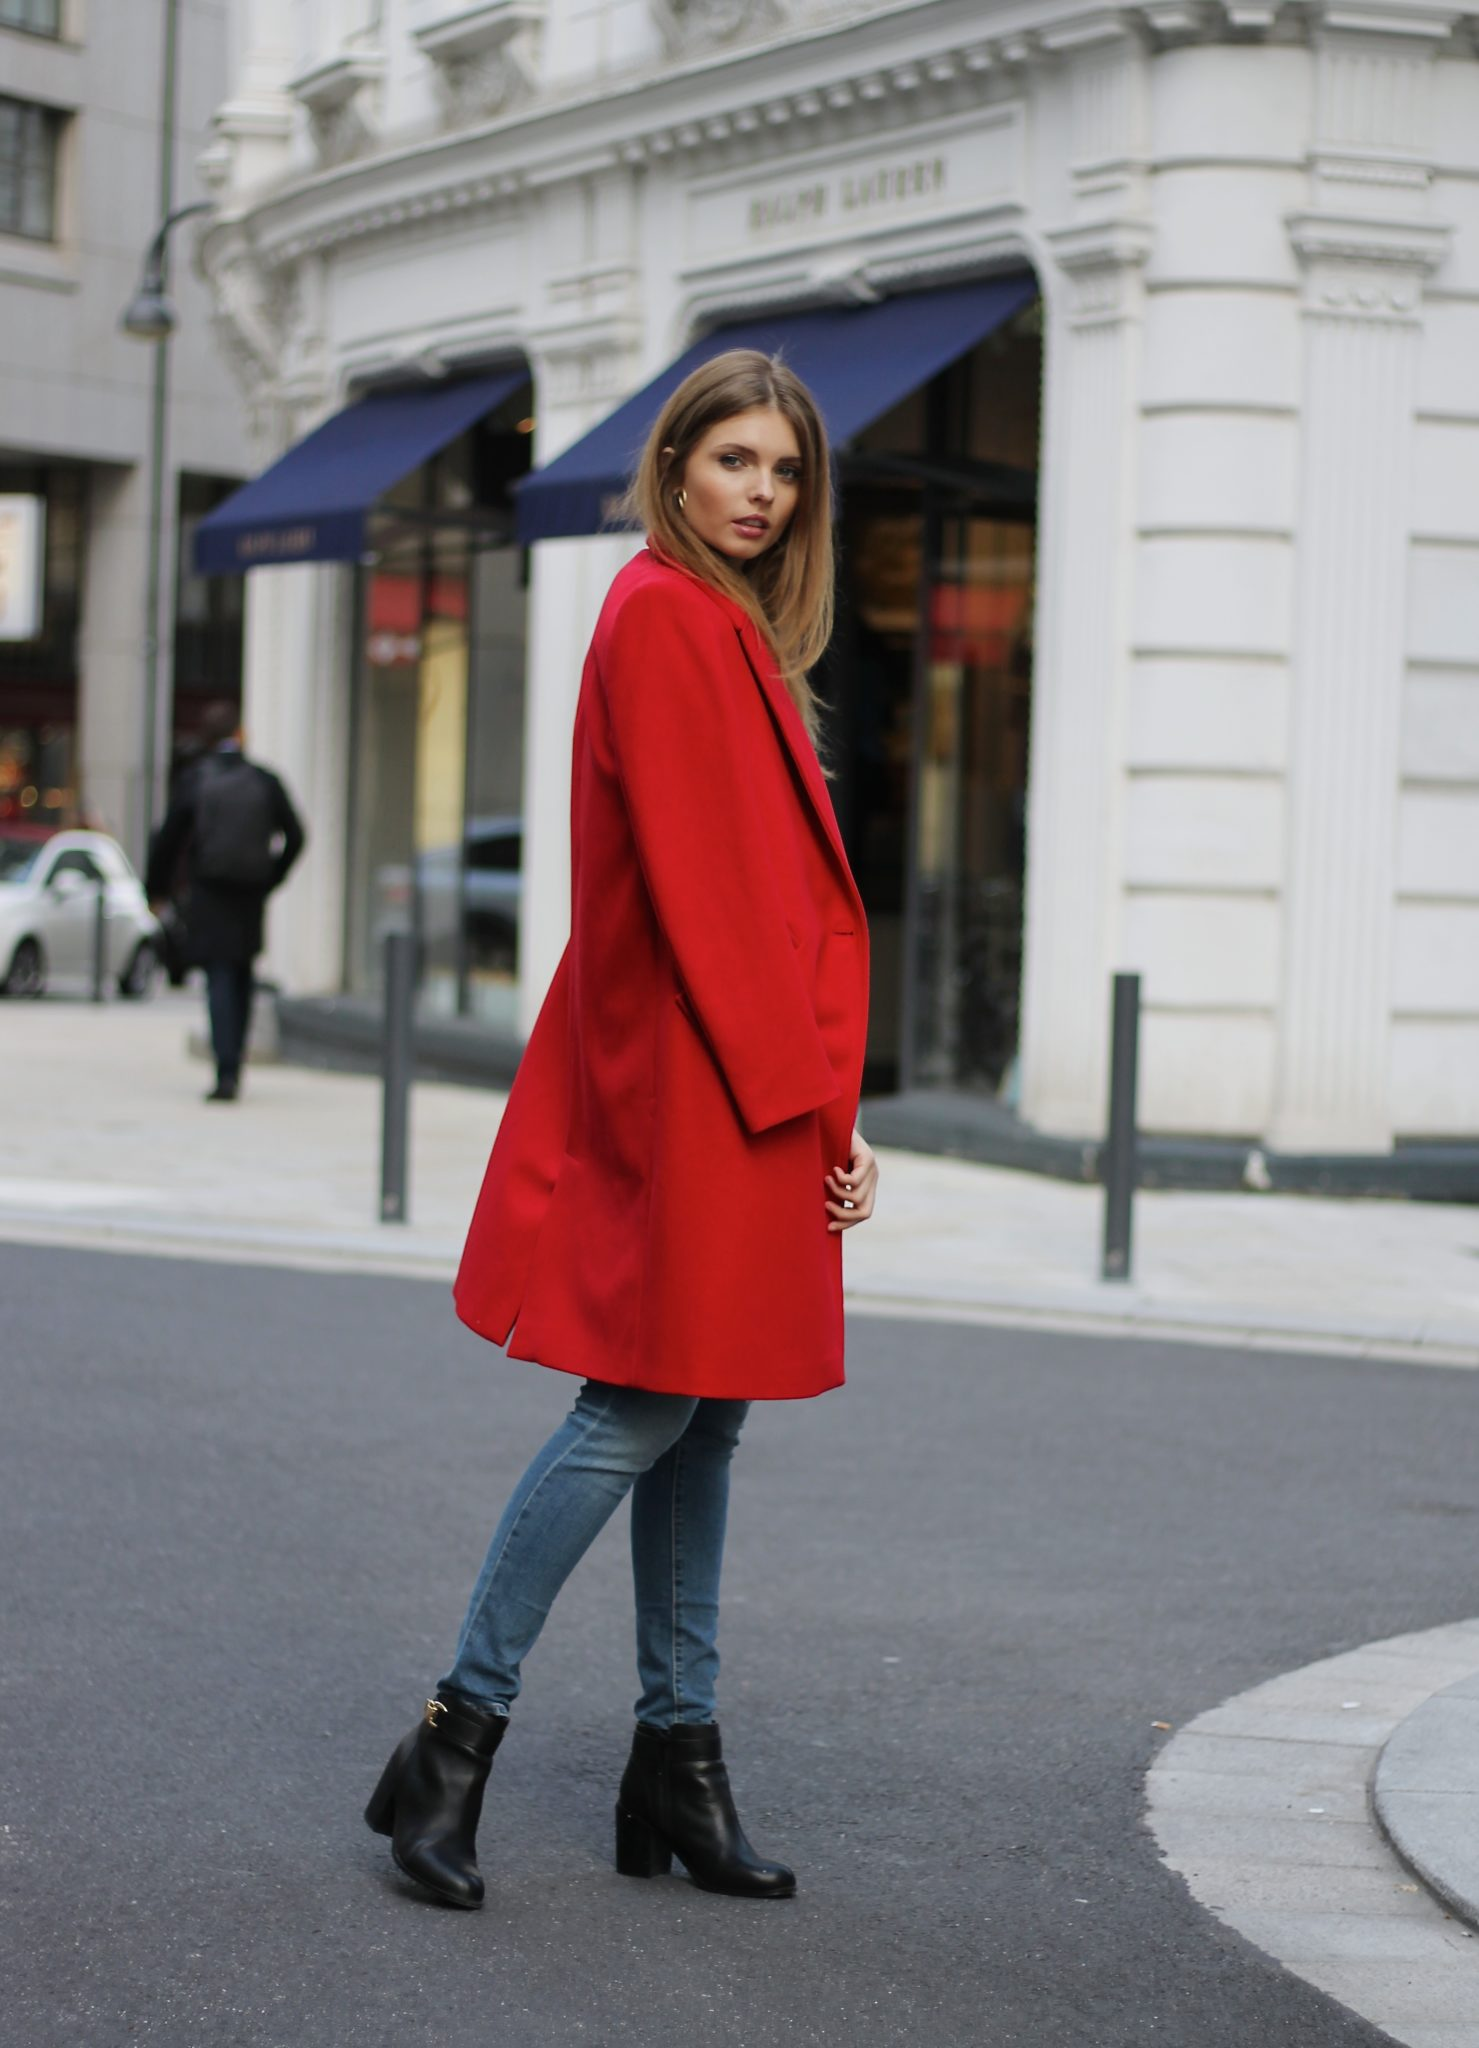 IMG 3163 - COLORFUL AUTUMN x TOMMY HILFIGER